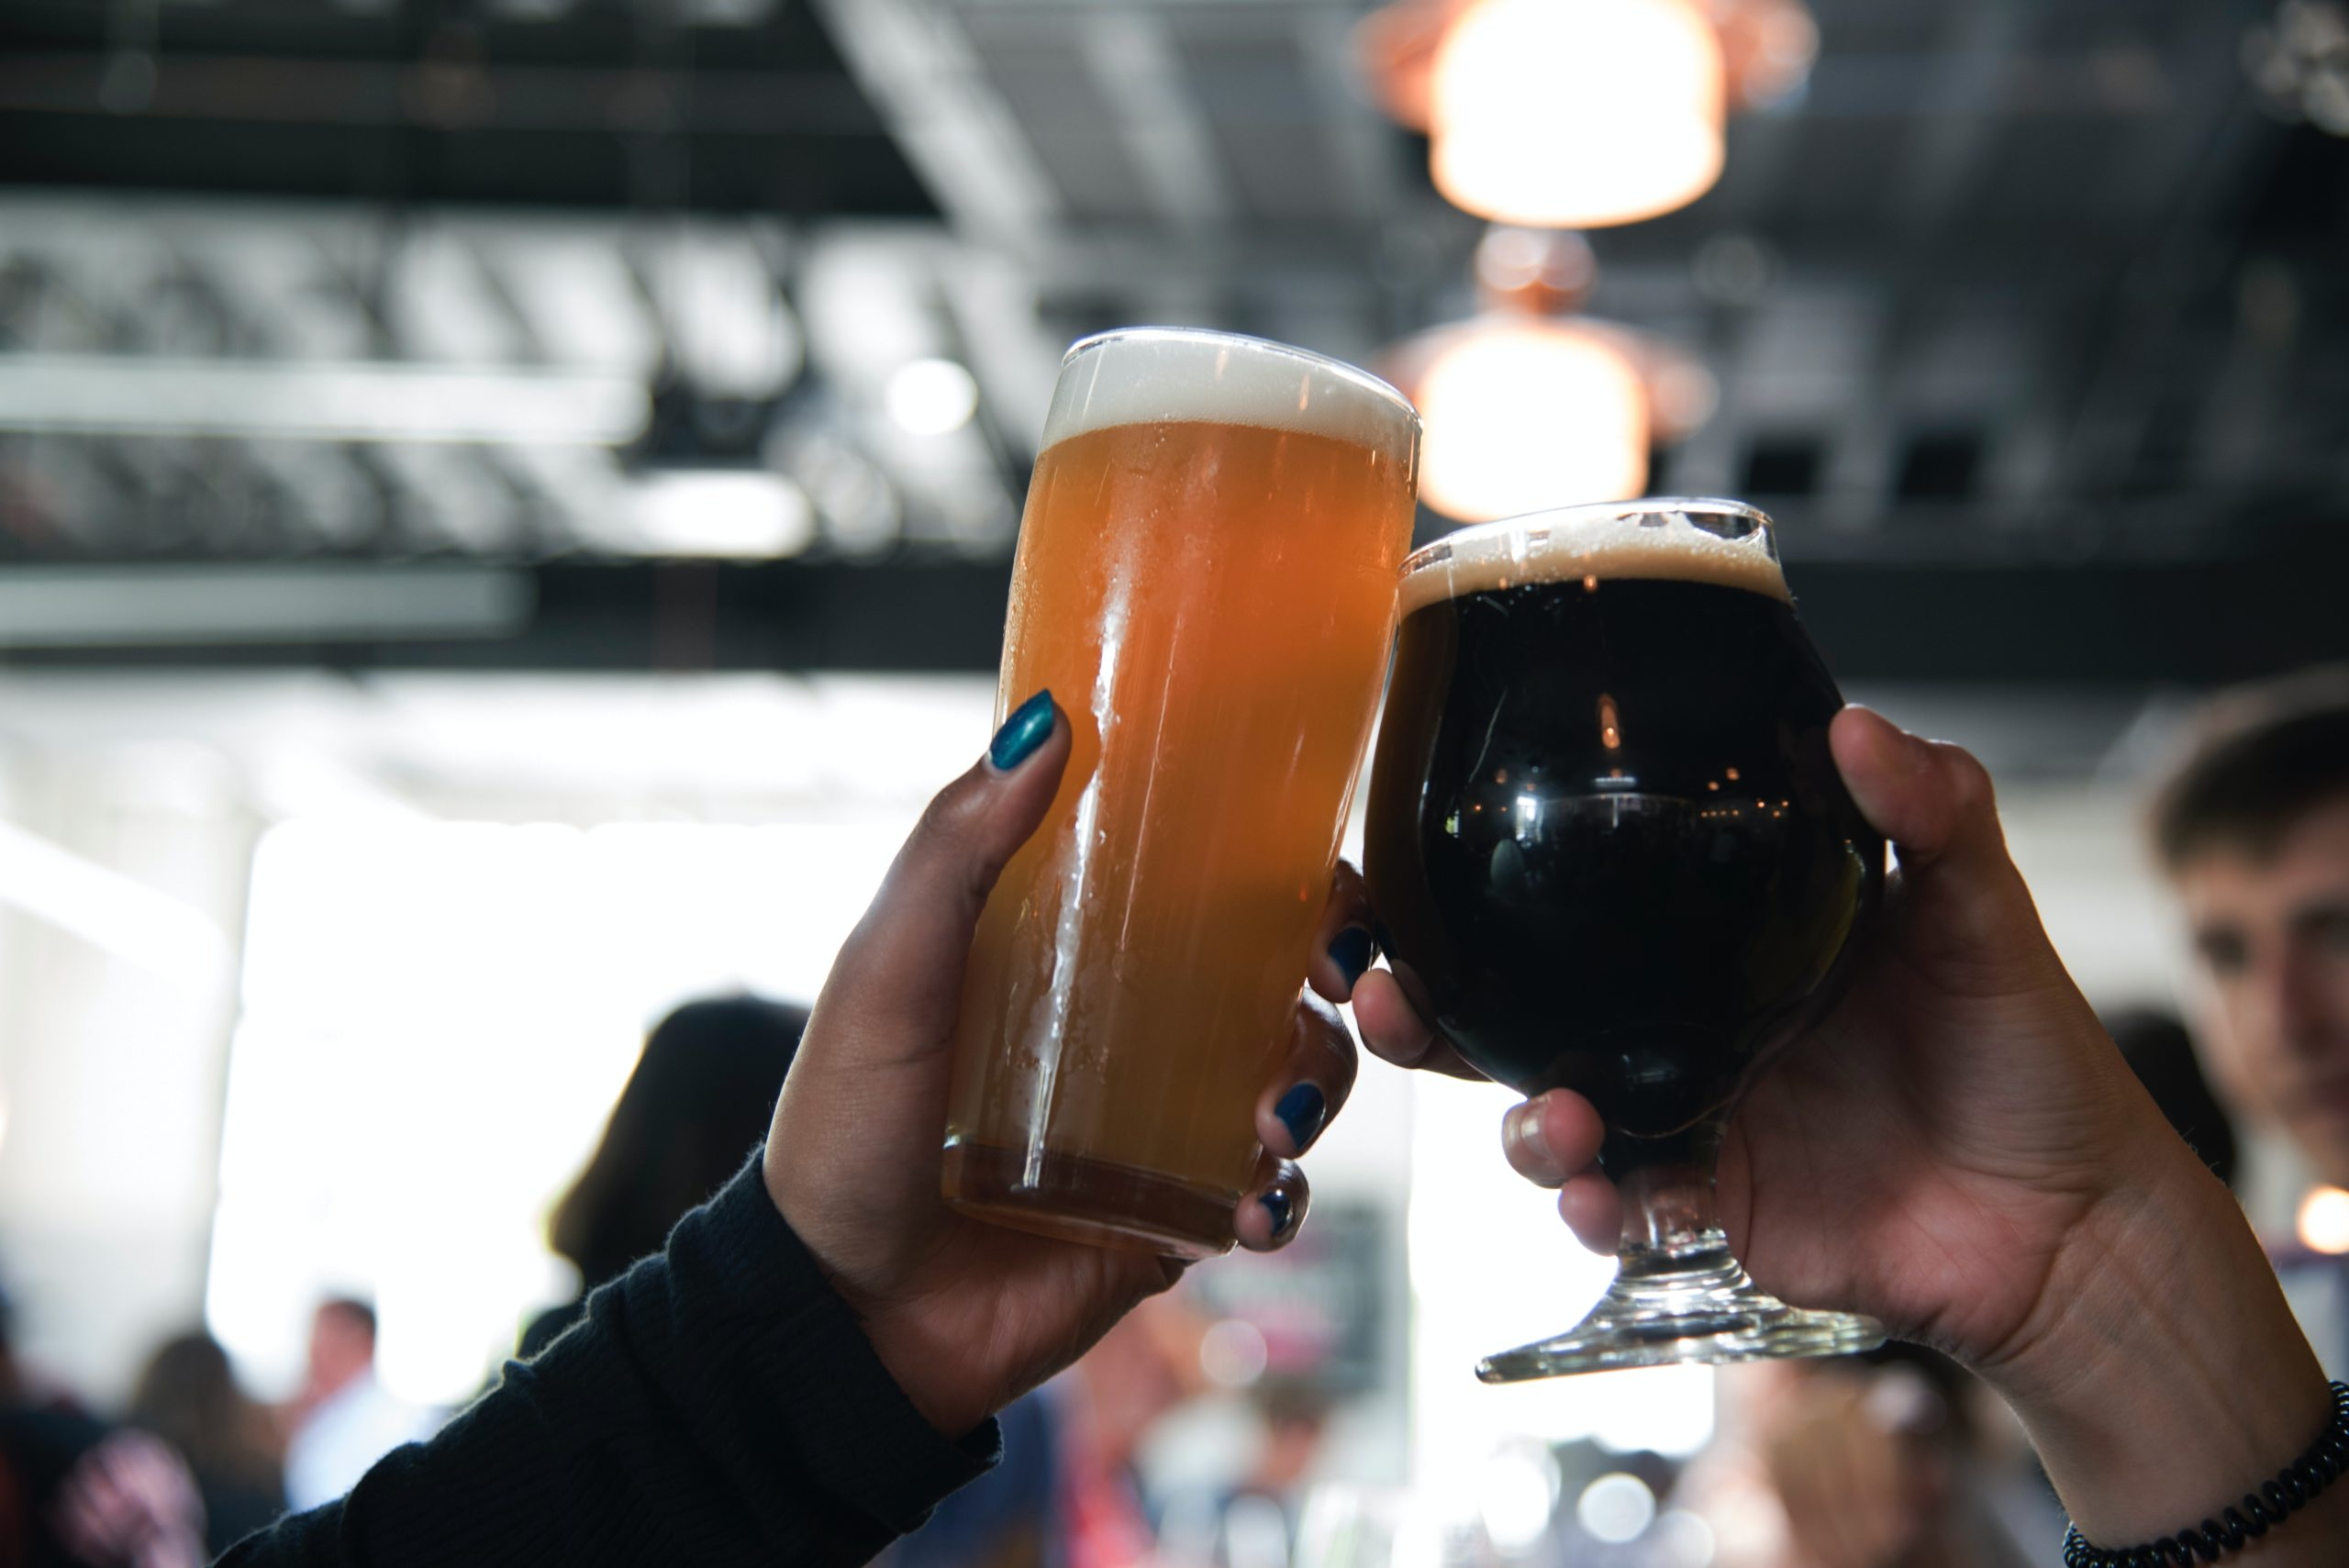 Craft Beer Fight Over B-Word Rages, With Good Press On Tap